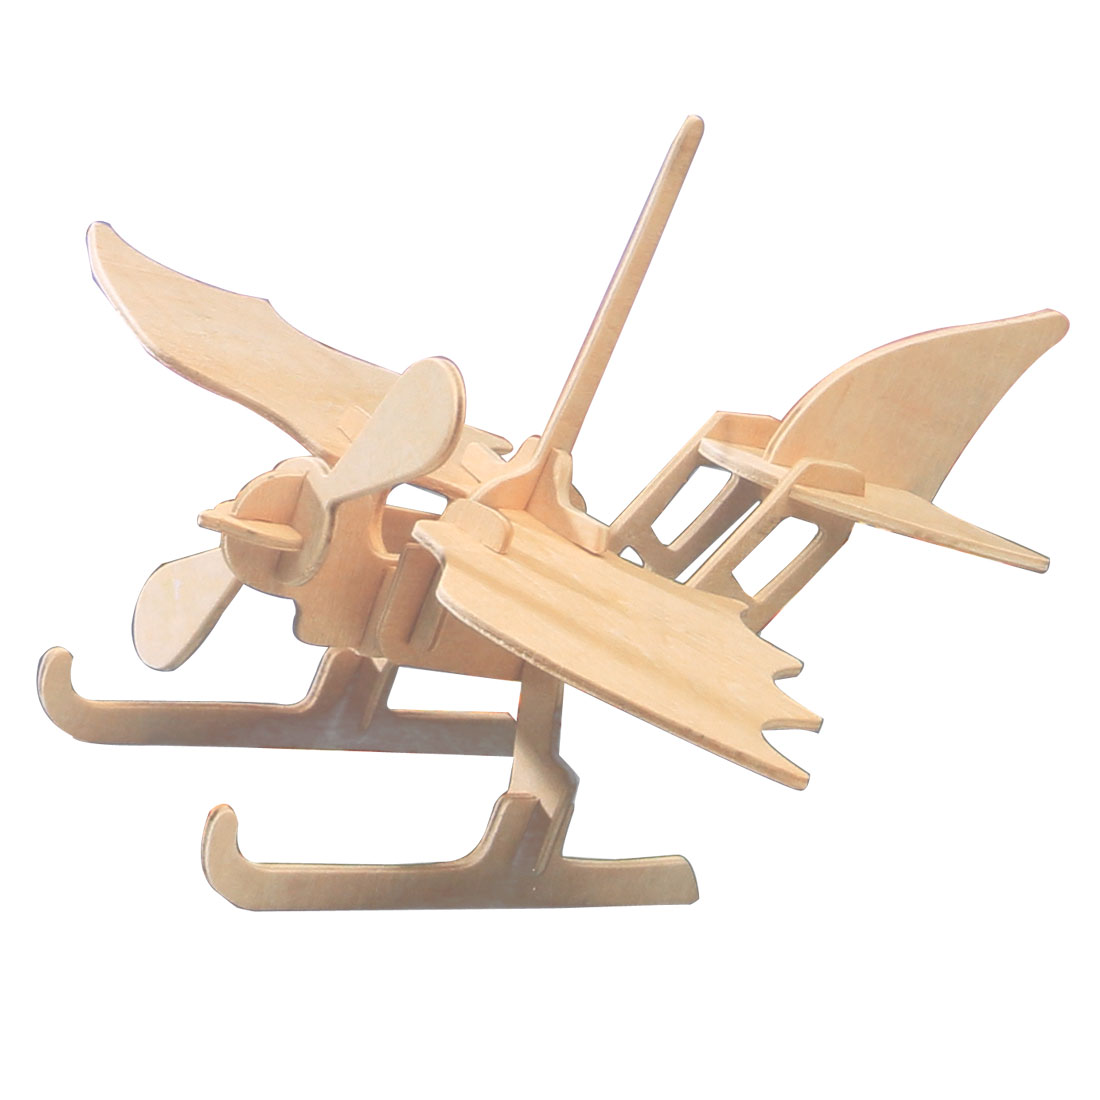 Woodcraft Emulation Sea Plane Model 3D Assemble Puzzle Wood Color